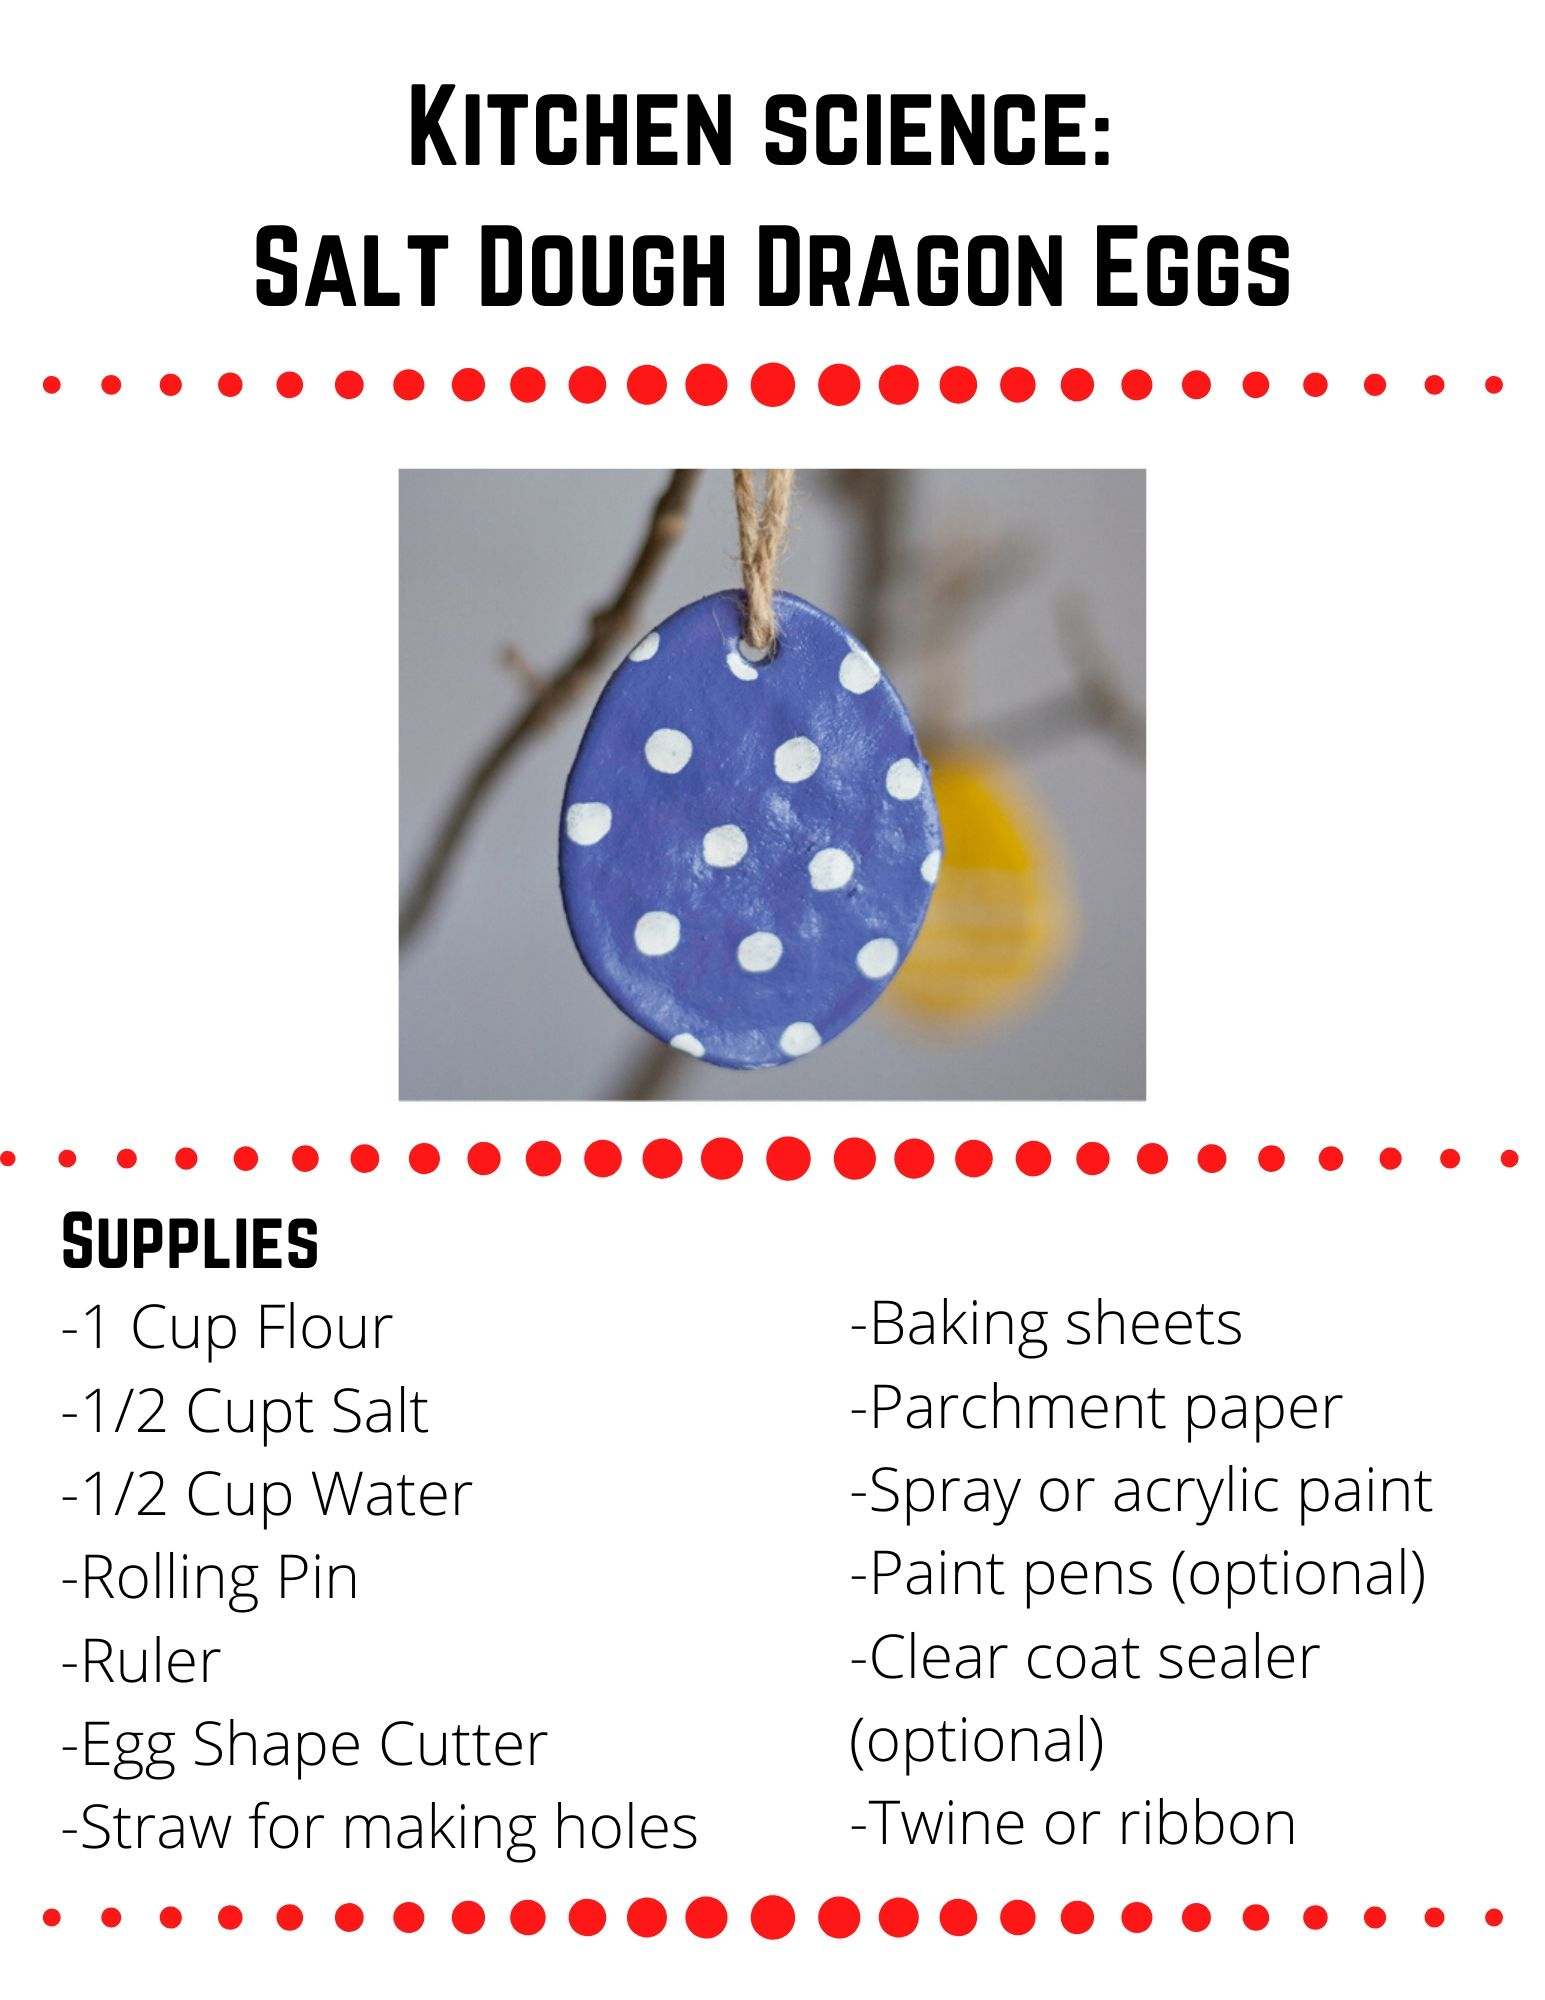 Salt Dough Dragon Eggs.  -1 Cup Flour -1/2 Cupt Salt  -1/2 Cup Water -Rolling Pin -Ruler -Egg Shape Cutter -Straw for making holes-Baking sheets    -Parchment paper -Spray or acrylic paint -Paint pens (optional) -Clear coat sealer (optional) -Twine or ribbon.  To make the salt dough, stir together flour, salt, and water until a dough forms. Kneading the dough a couple times can help make it smoother.  Roll out the dough to about 1/4 in. thick and cut out egg shapes (you can use any cookie cutter and cut out any shape you want).  Place the eggs on a parchment covered baking sheet.  Use the straw to poke a hole in the top of the egg if you plan to hang it like an ornament.  Bake at 250 for 2 hours.  Once the shapes are baked, dried, and cooled, you can paint them using spray paint or acrylic paint.